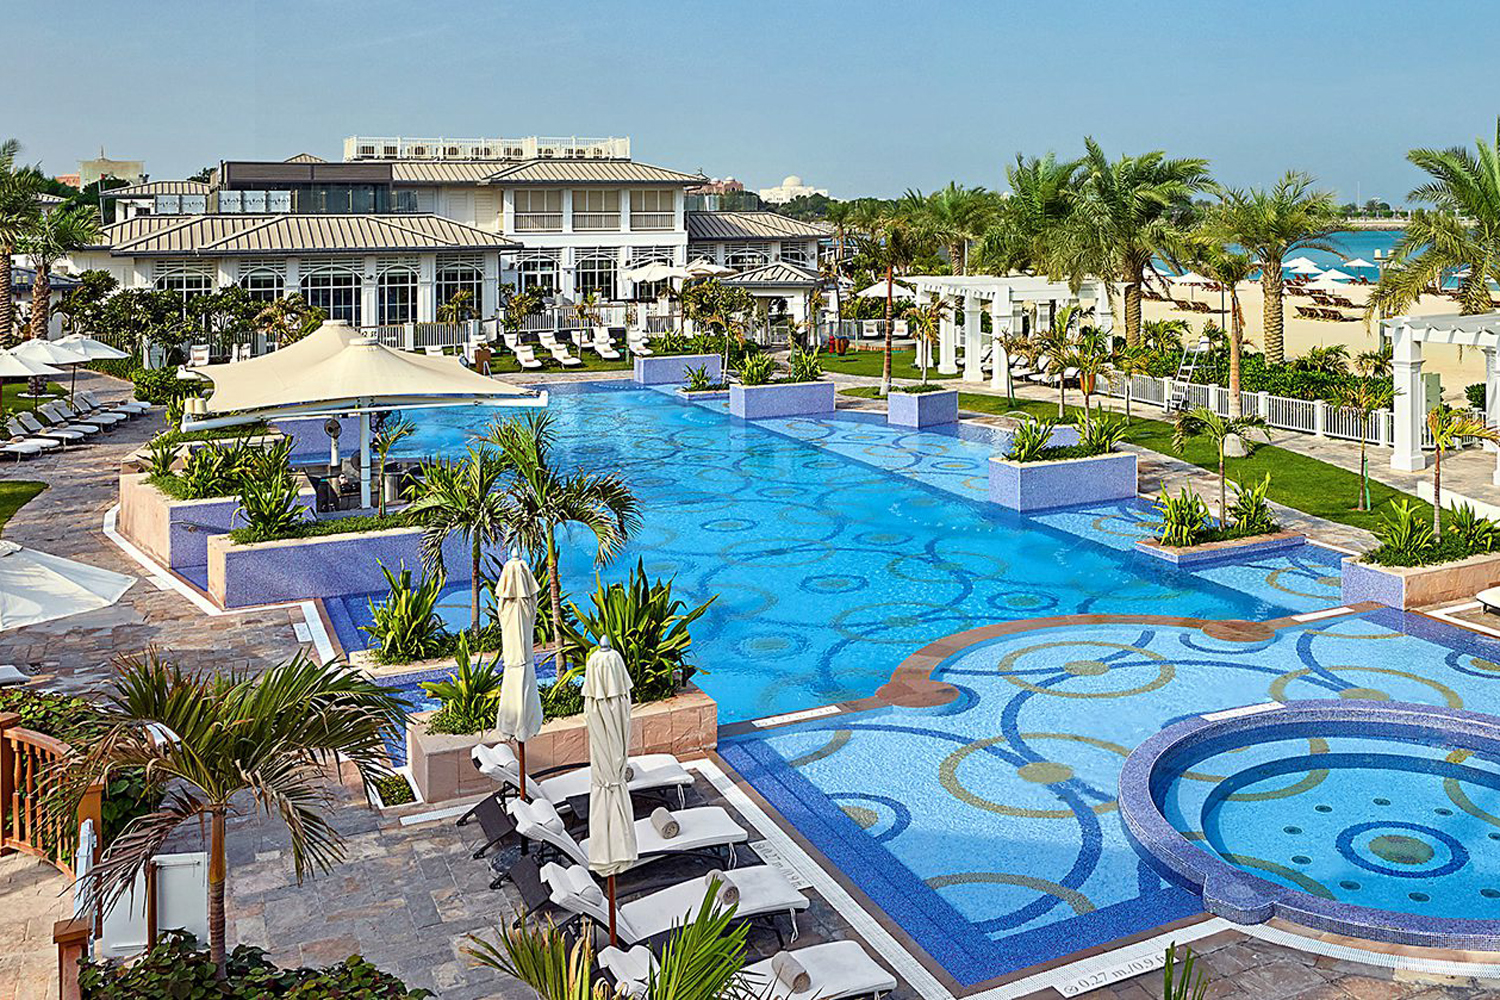 Chill out at Nation Riviera Beach Club | Things To Do | Time Out Dubai